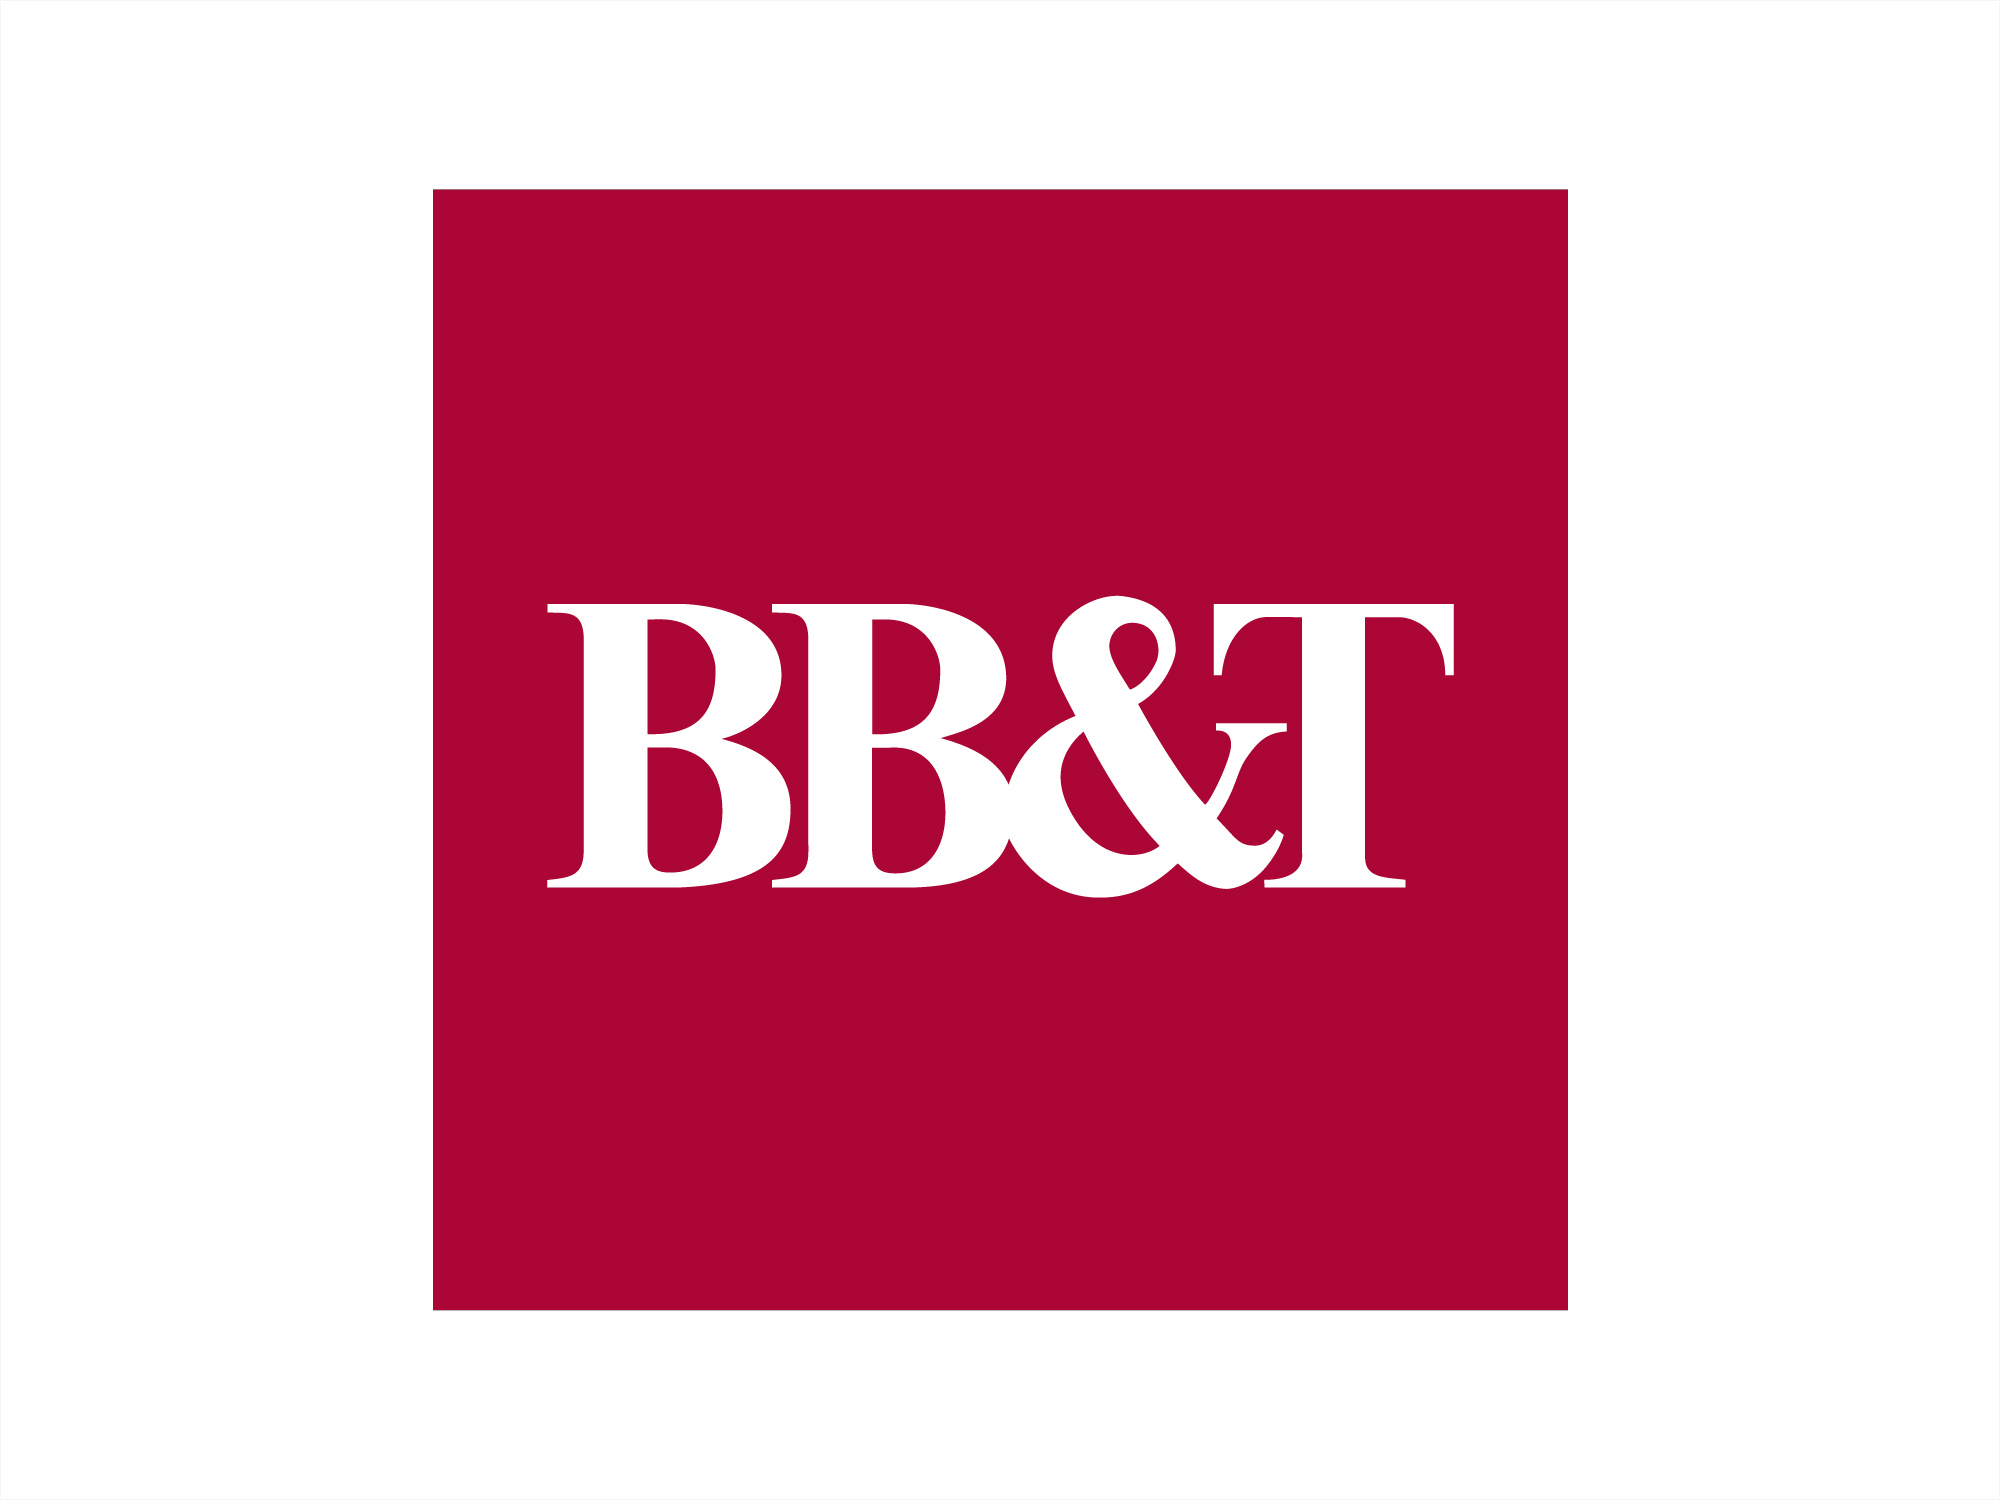 Customers fume as BB&T and TD Bank suffer major outages